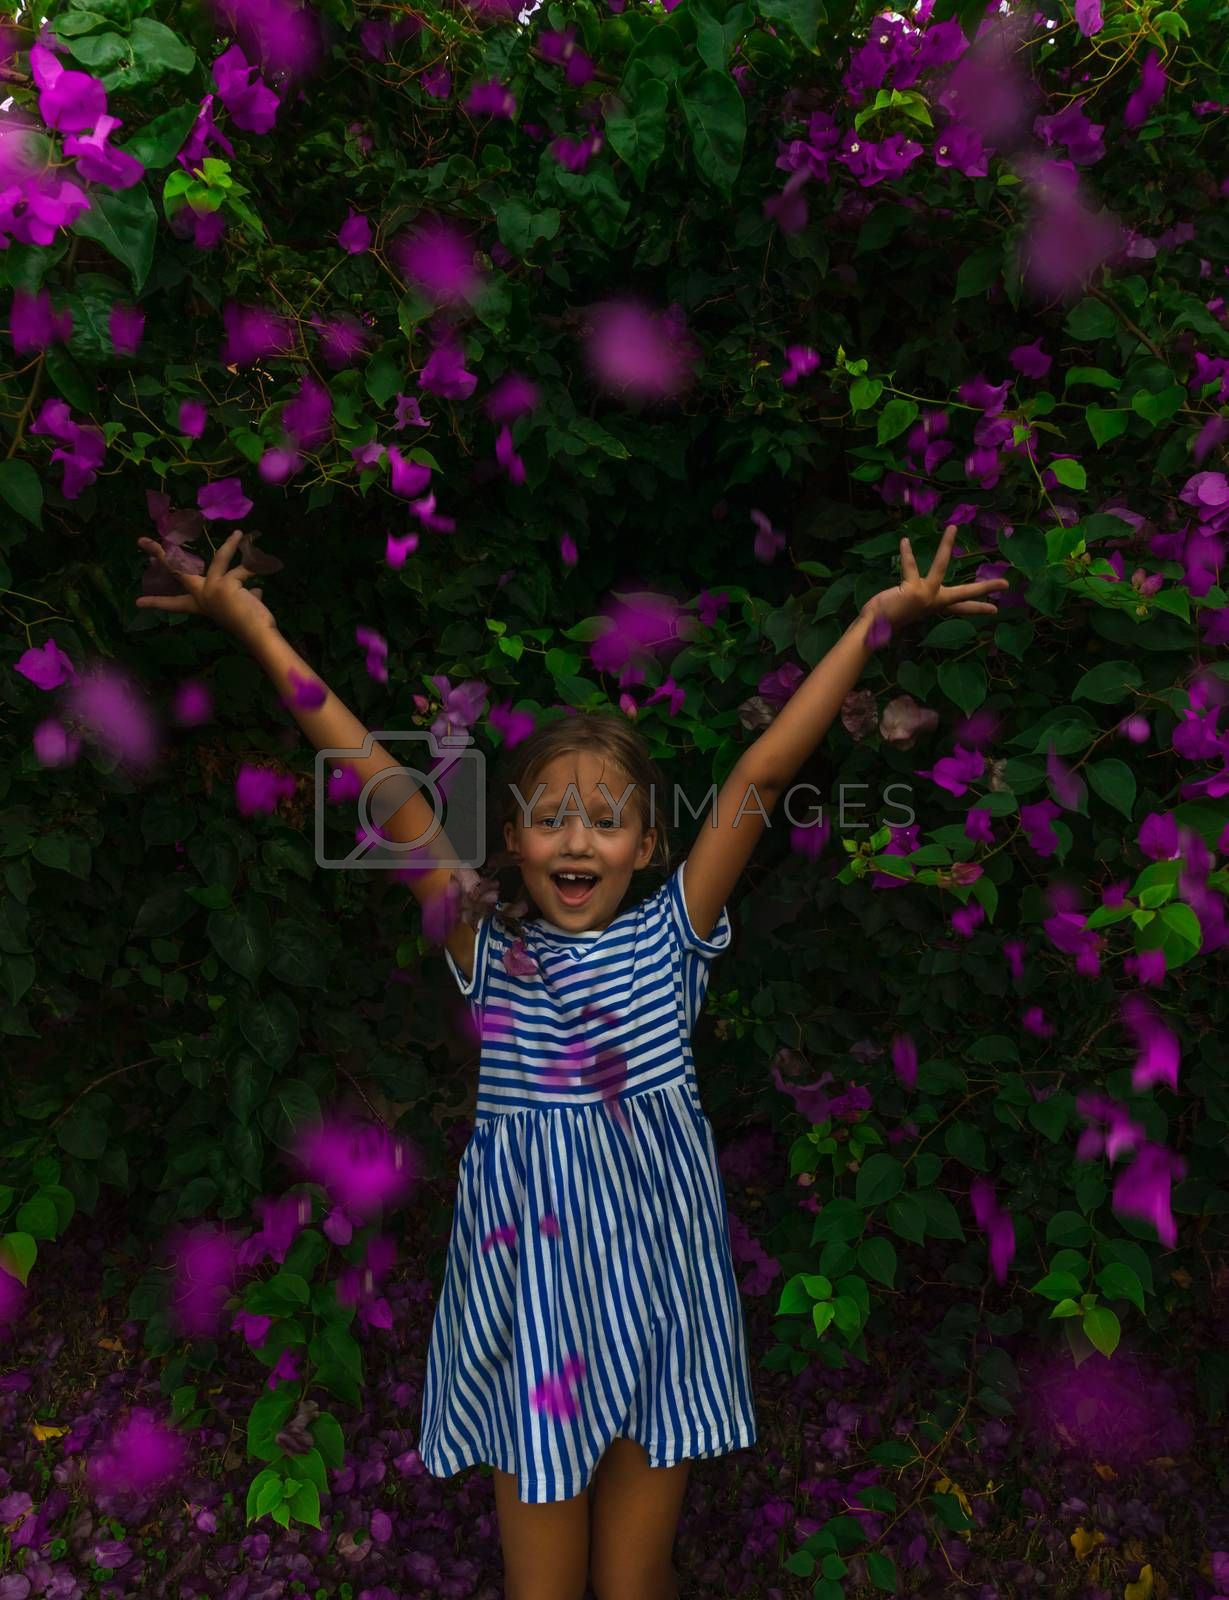 Royalty free image of Happy Little Girl Throws Flowers by Anna_Omelchenko